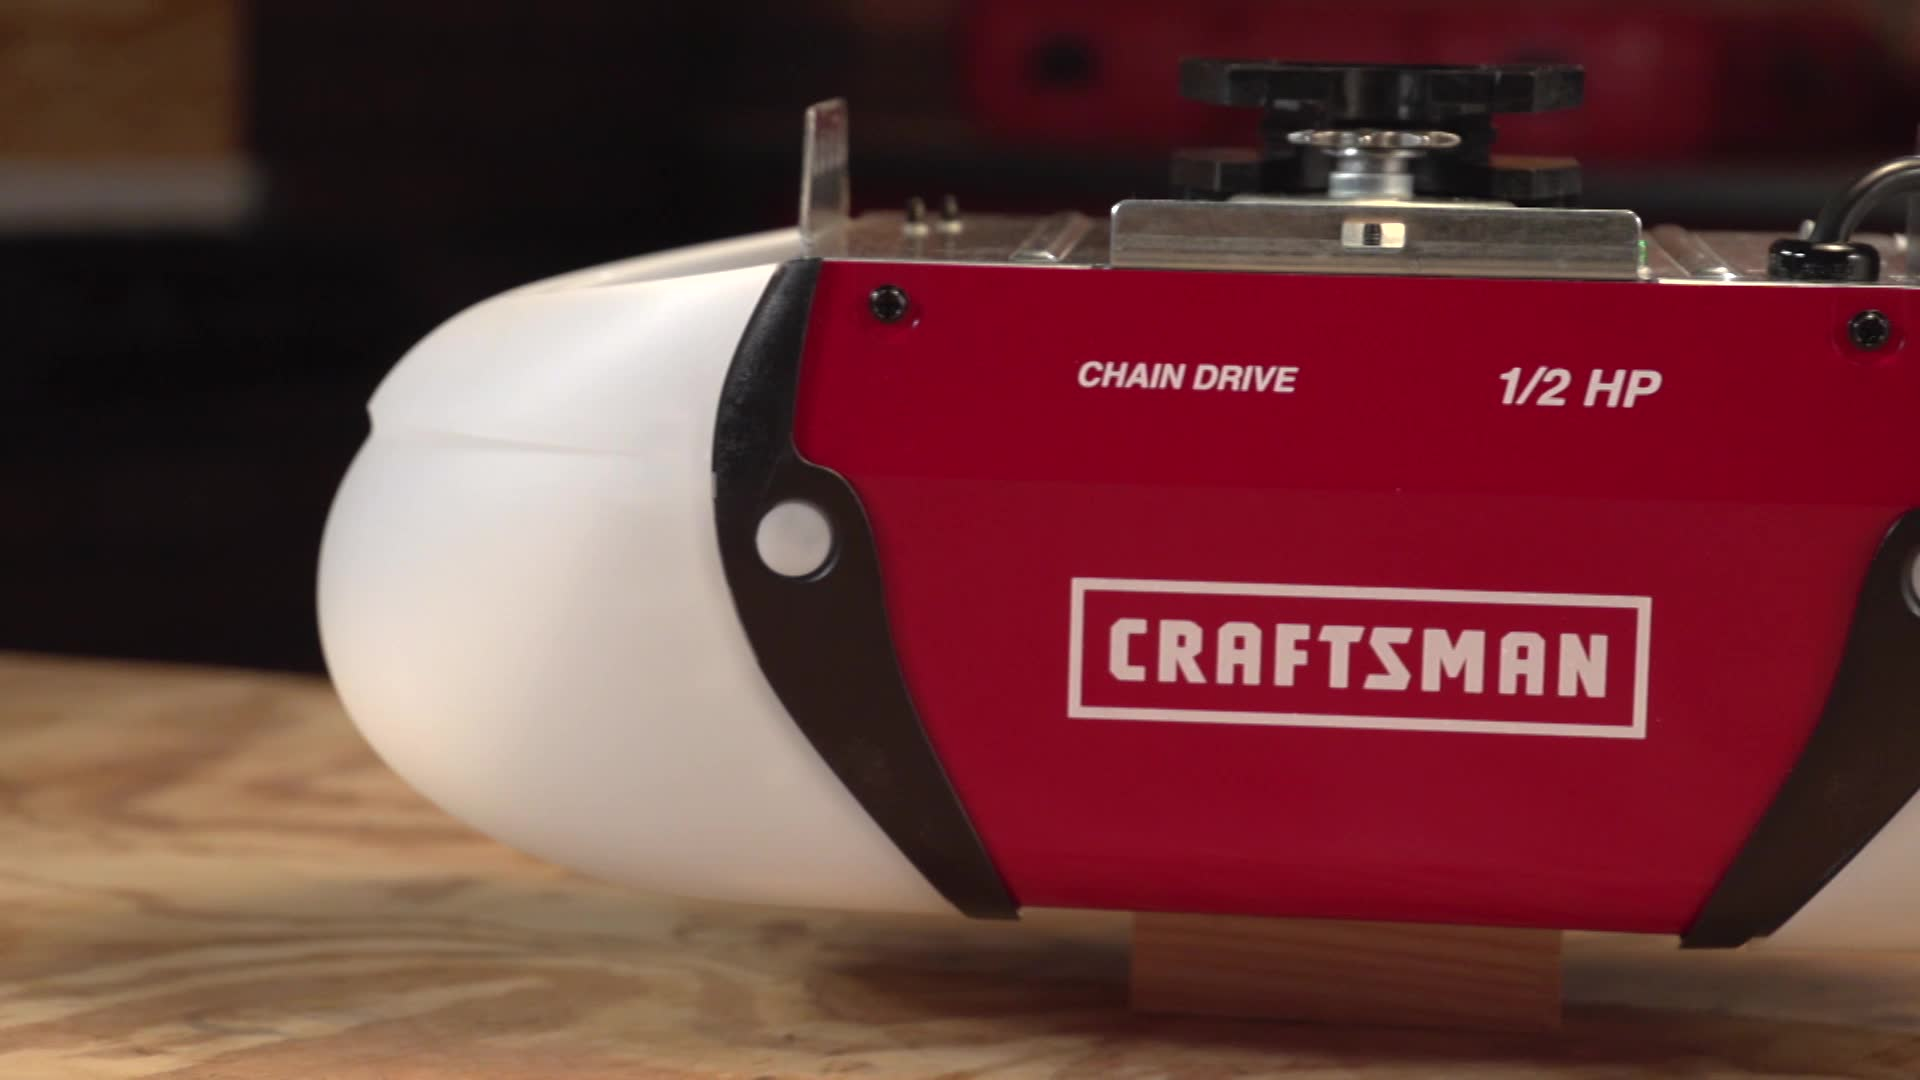 Craftsman ½ HP Chain Drive Garage Door Opener Review